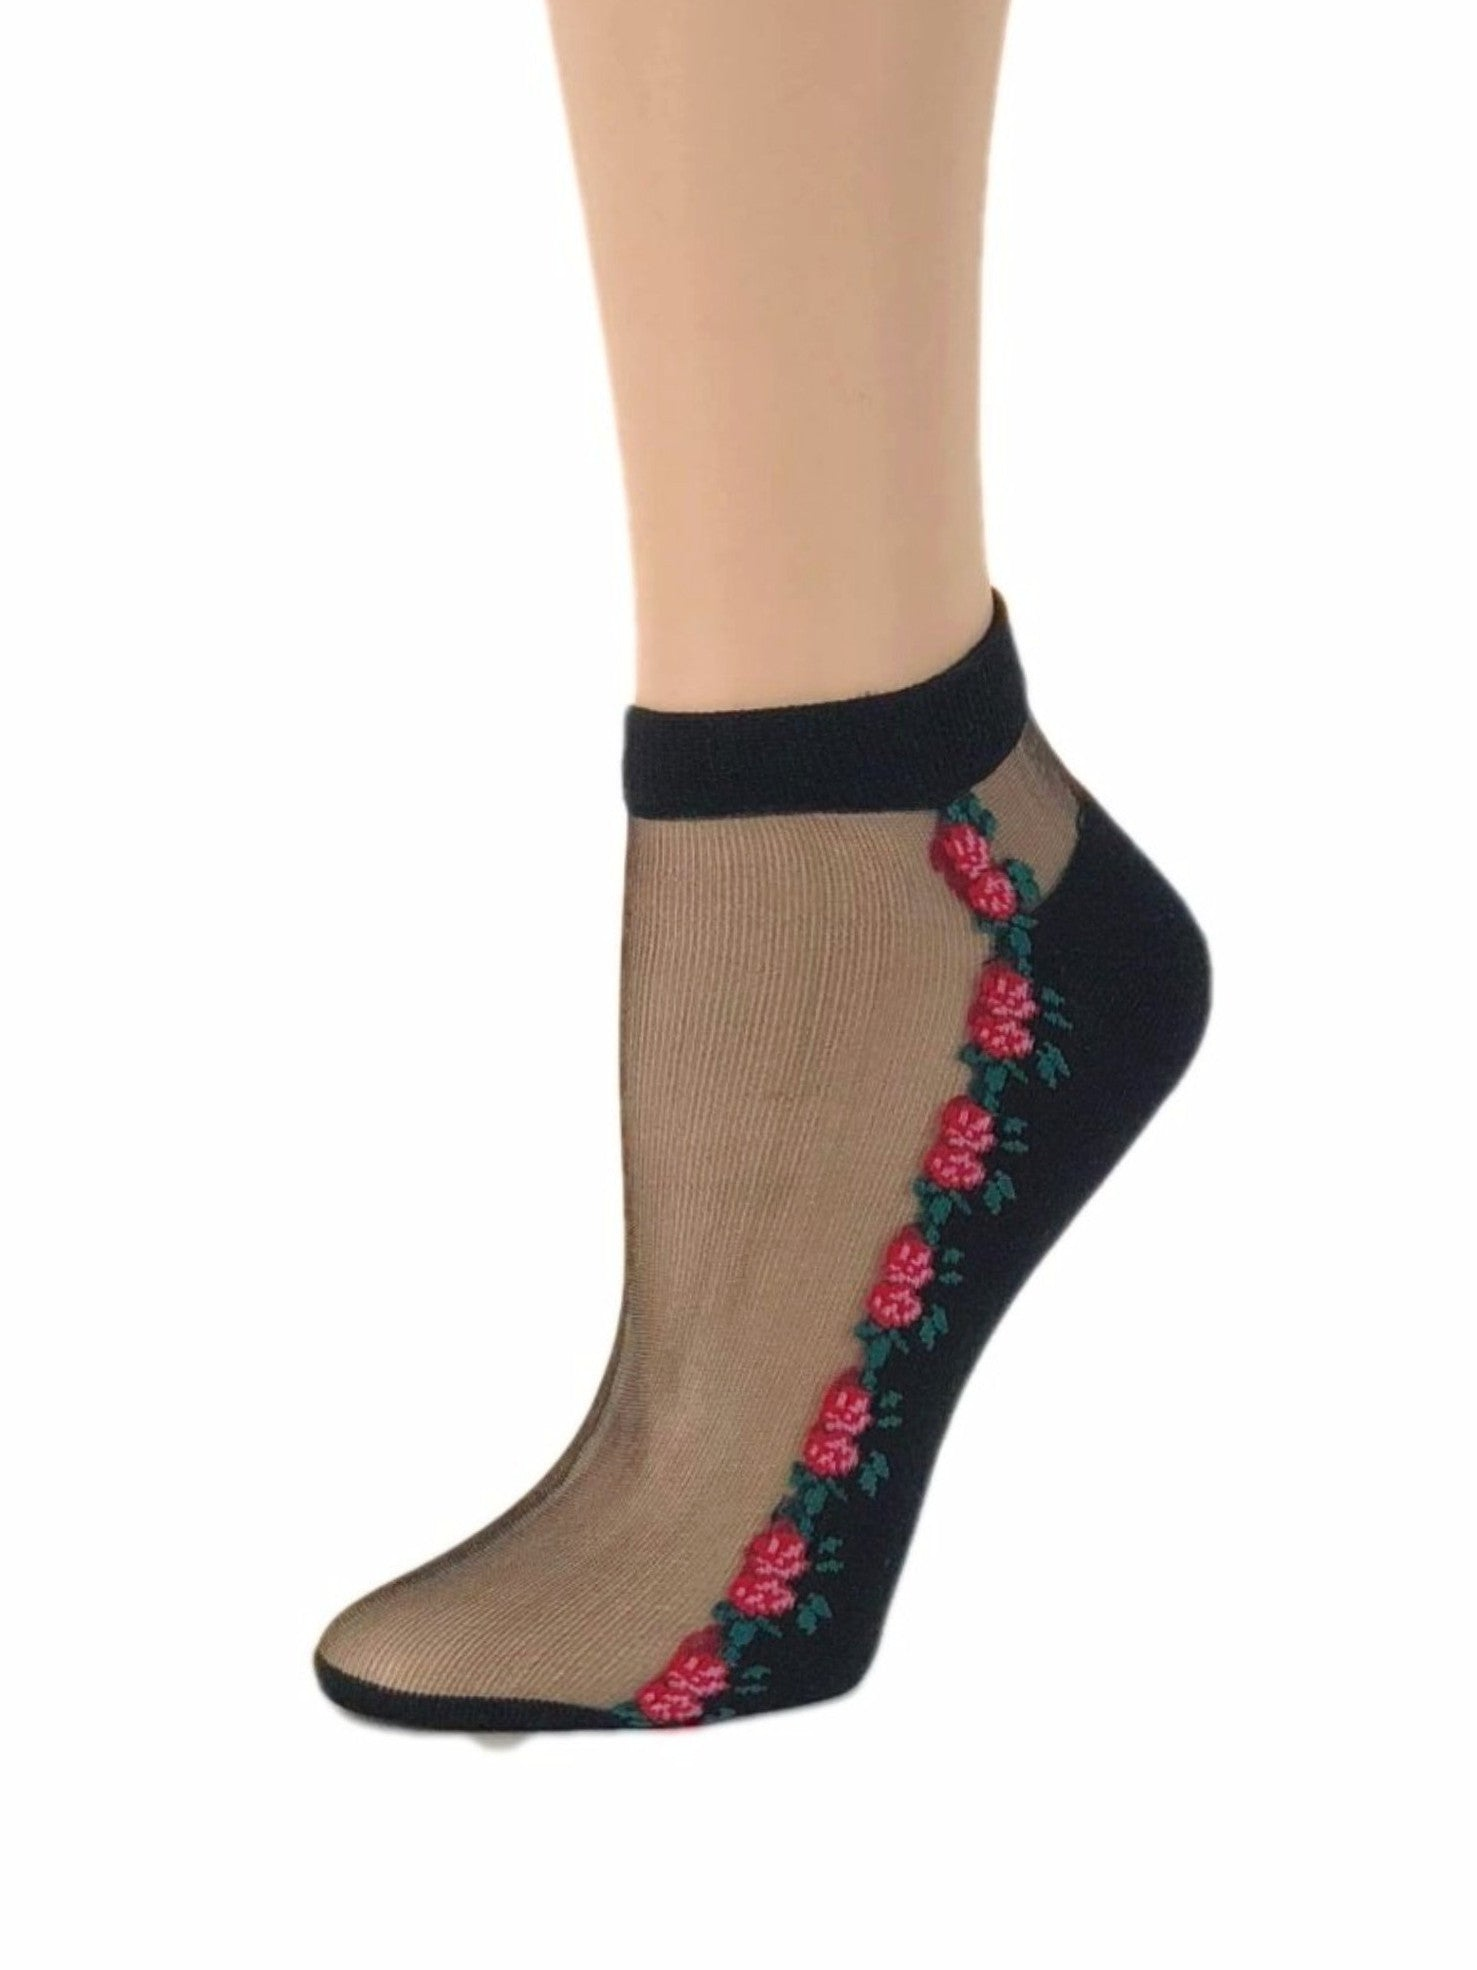 Small Red Roses Ankle Sheer Socks-Global Trendz Fashion®